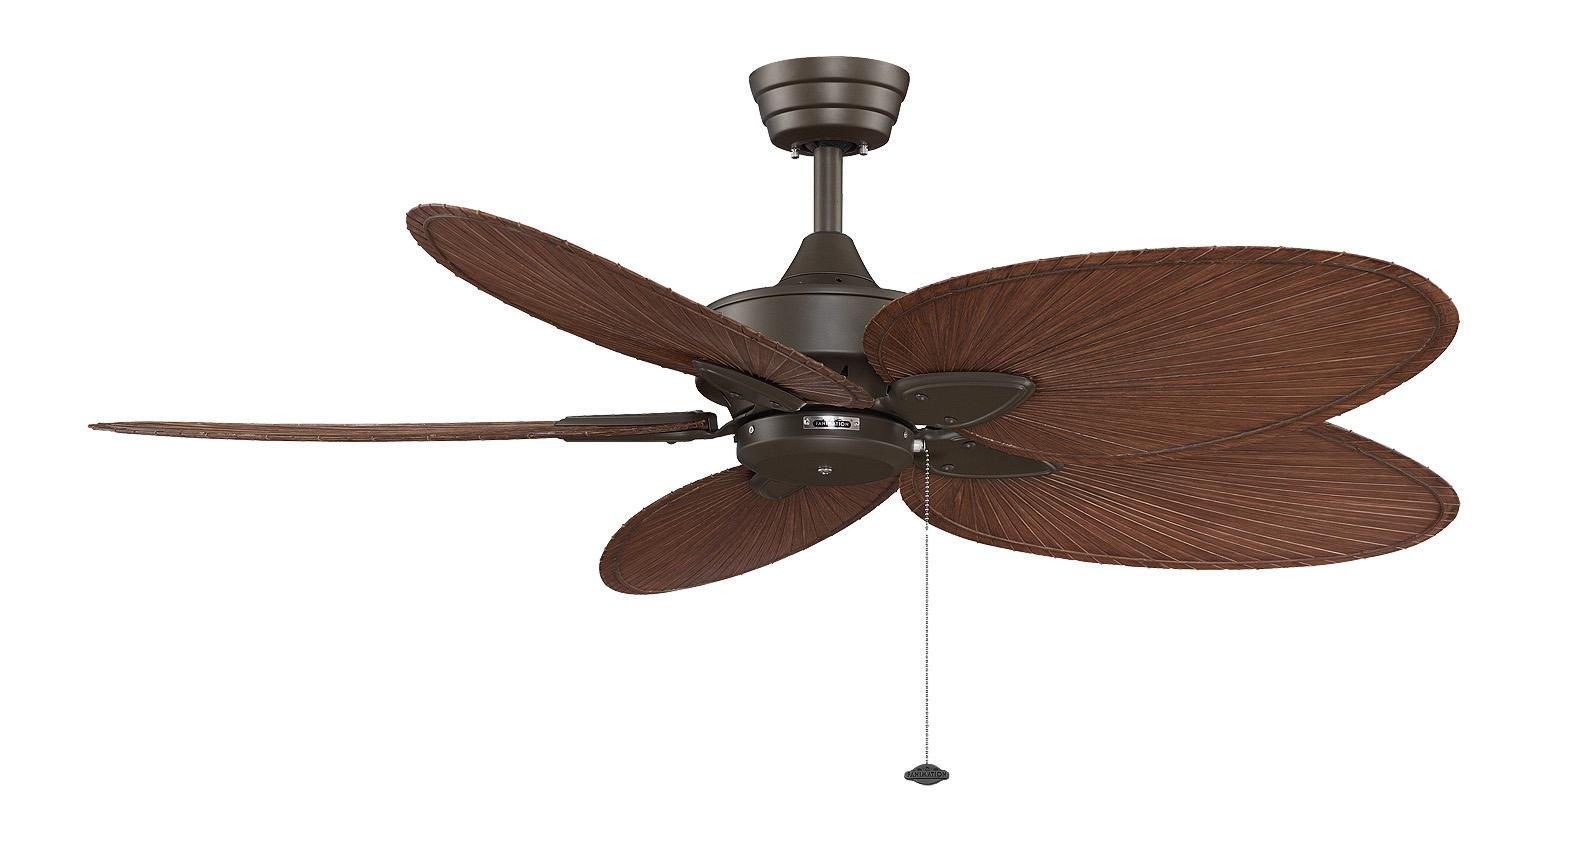 Ceiling fan palm blades | Warisan Lighting:ceiling fan palm blades photo - 1,Lighting